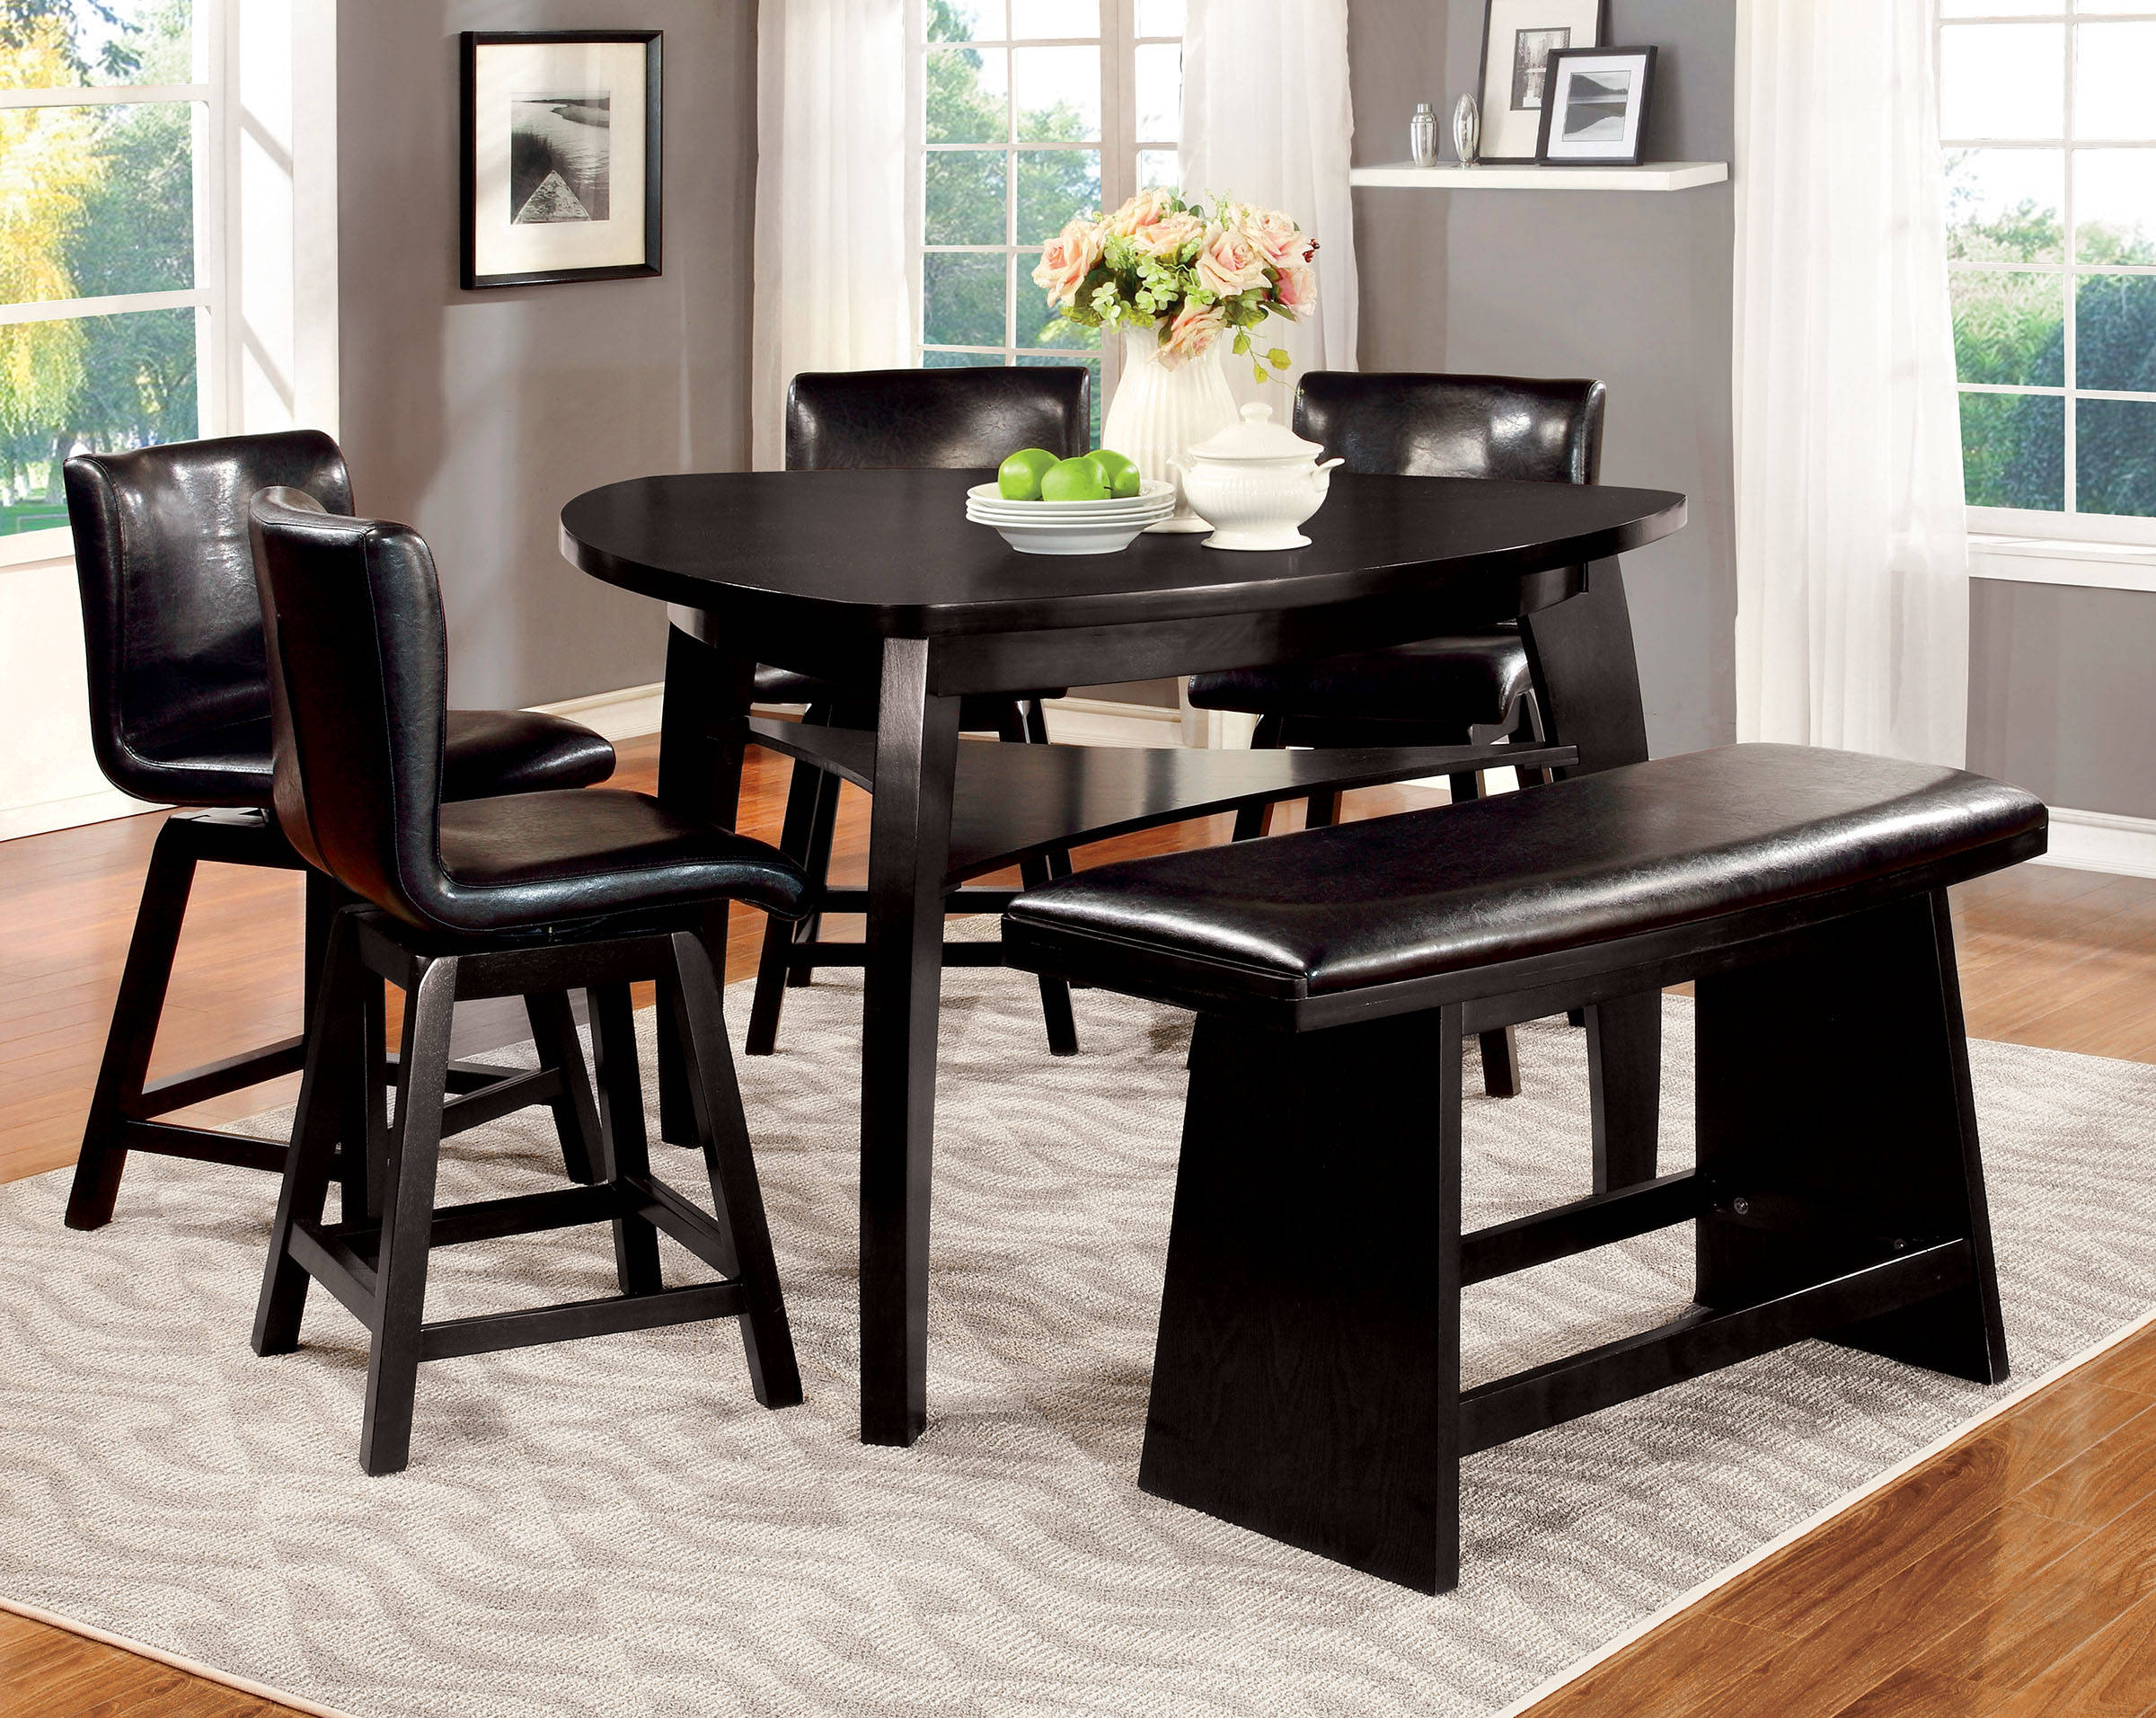 Furniture of America Hurley Counter Height Table